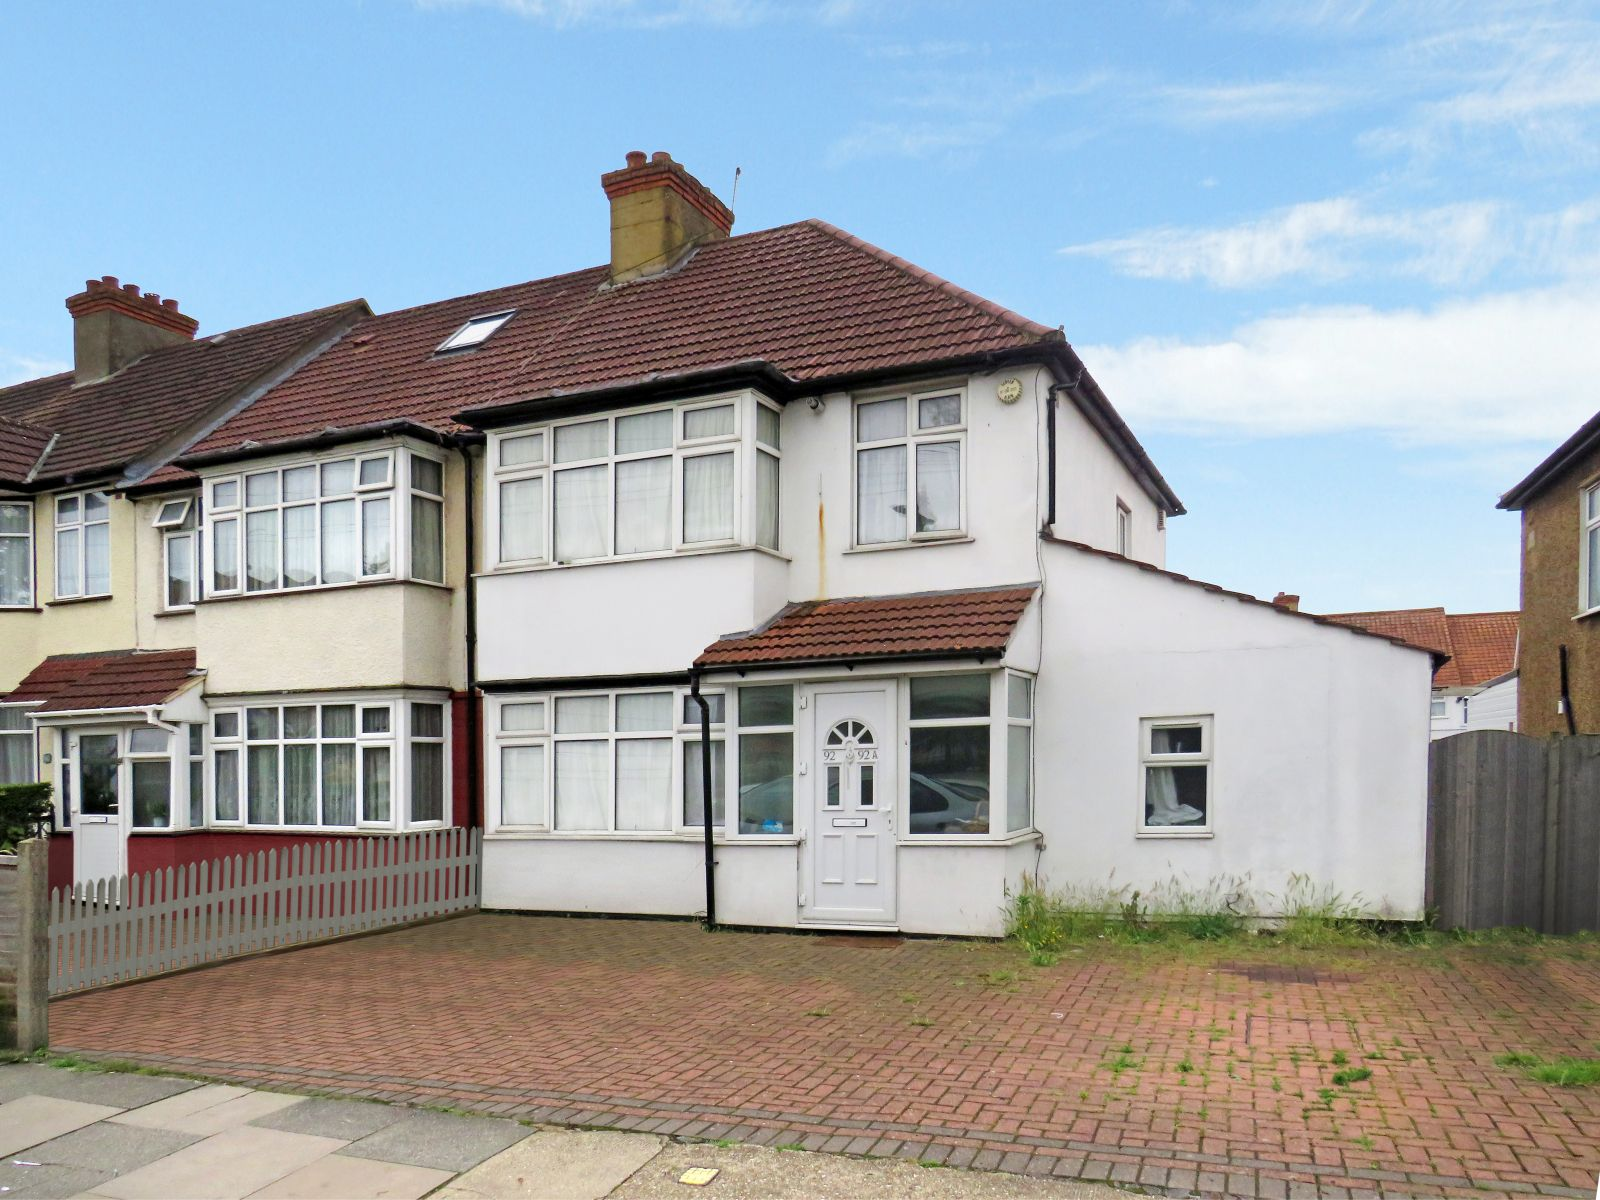 Property photo 1 of 6. Mount Pleasant, Wembley, Middlesex Ha0